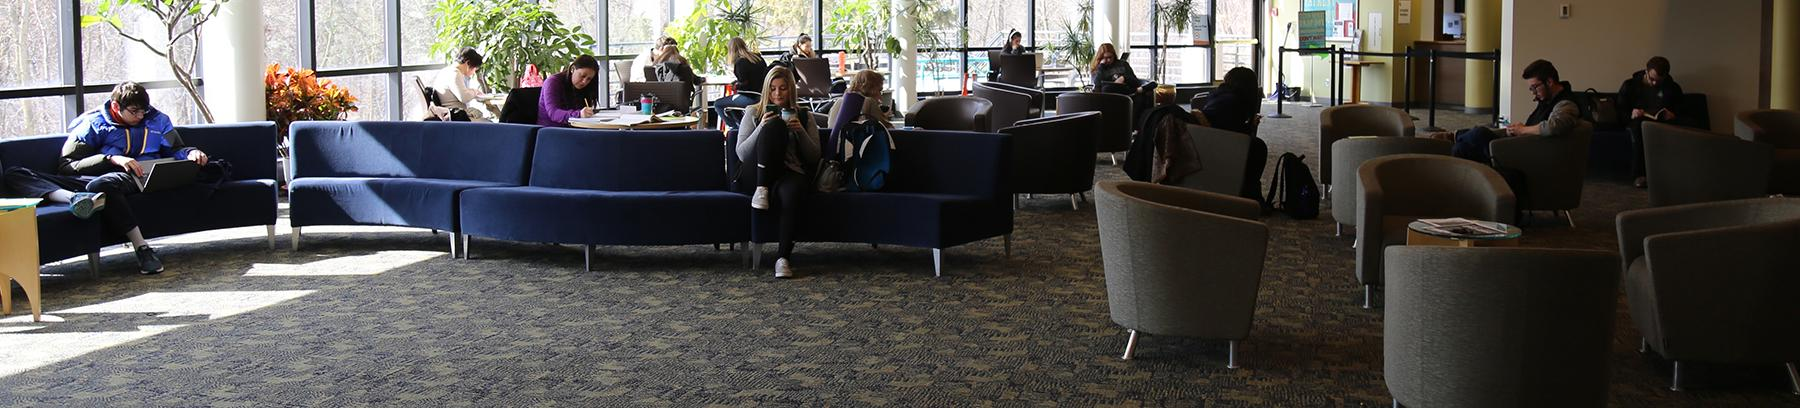 Students on devices in the West Campus common area.